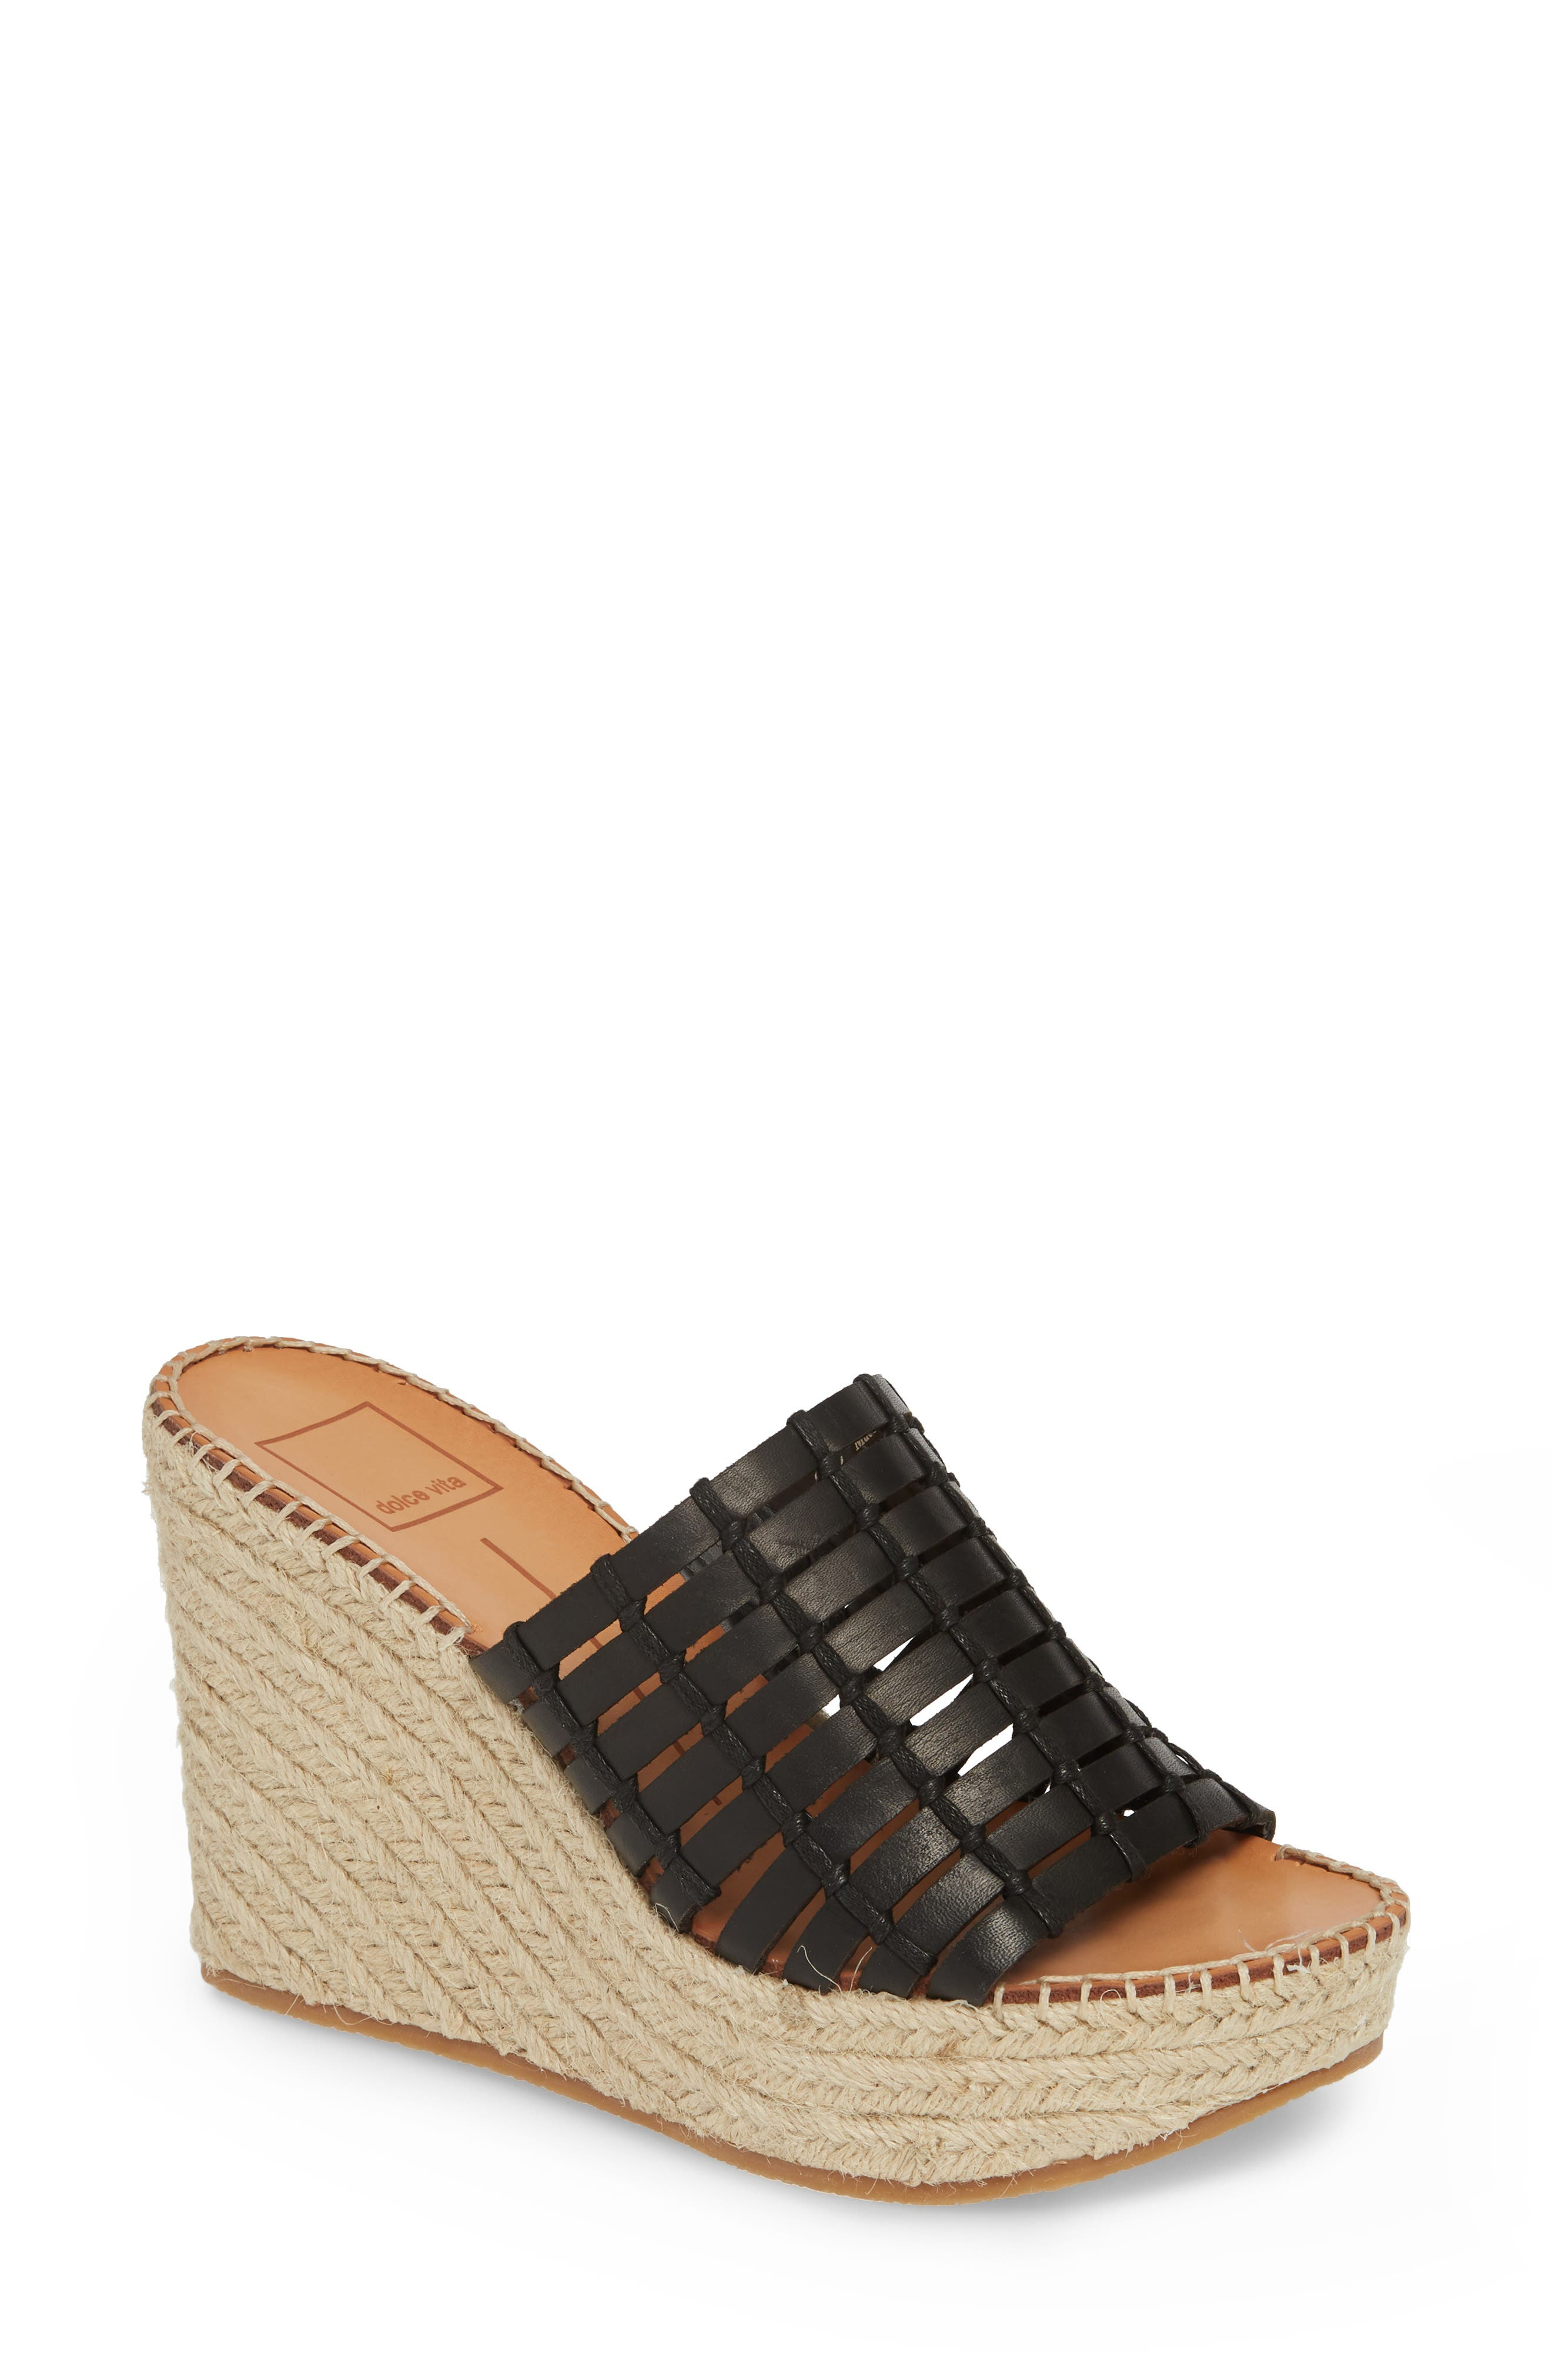 DOLCE VITA, Prue Espadrille Wedge Slide Sandal, Main thumbnail 1, color, BLACK LEATHER